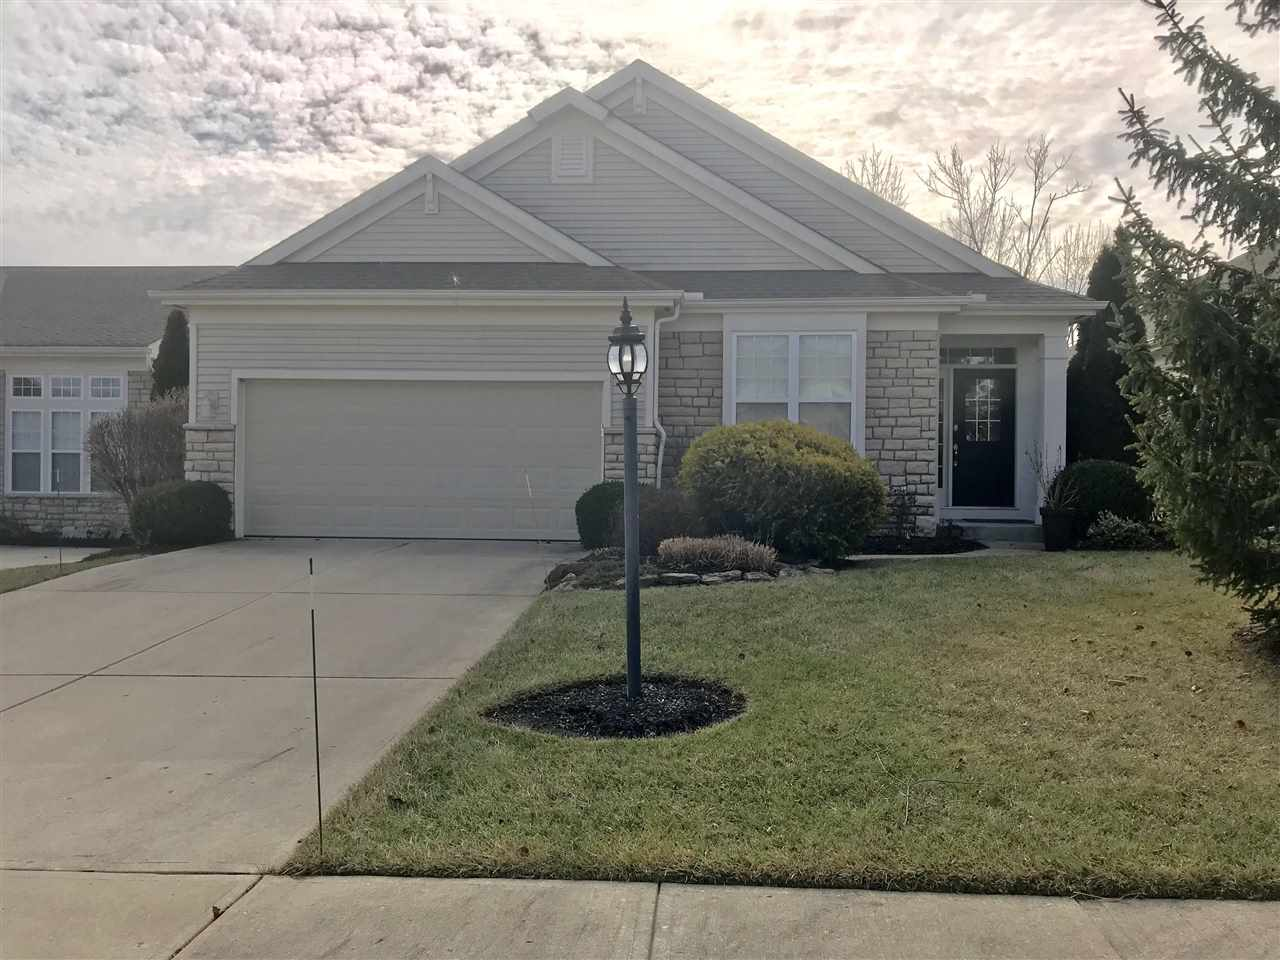 Photo 1 for 2536 Saint Charles Cir Union, KY 41091